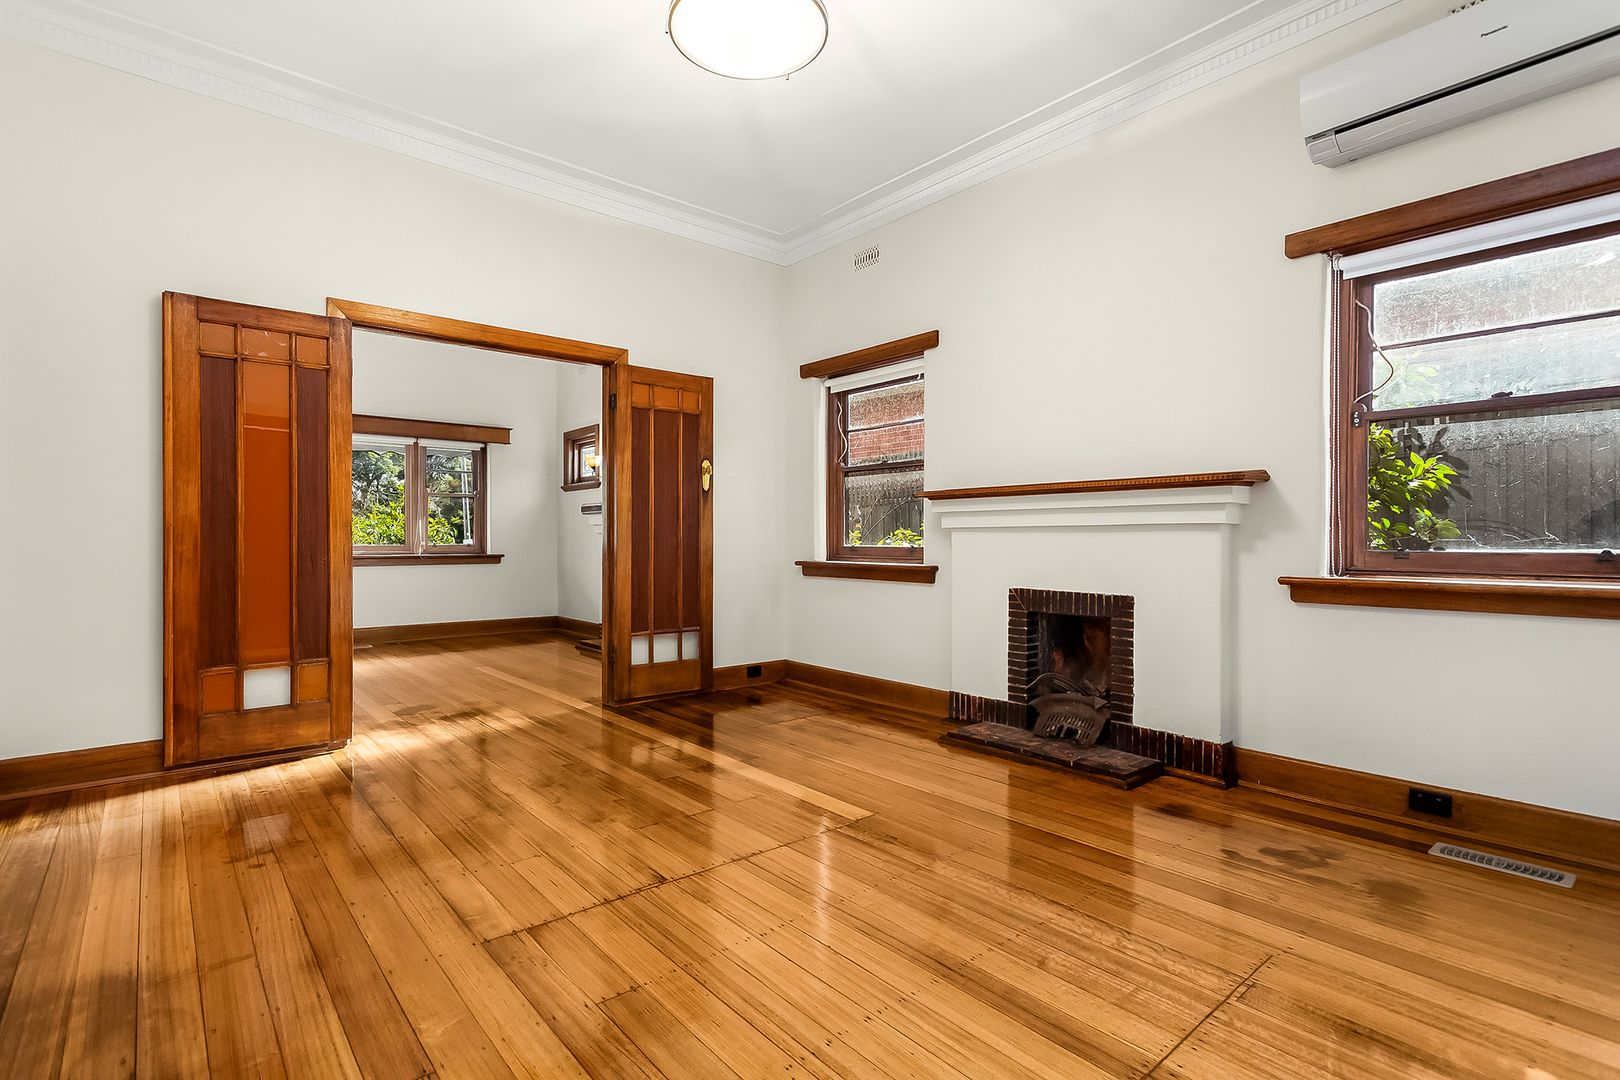 456 Tooronga  Road, Hawthorn East VIC 3123, Image 1